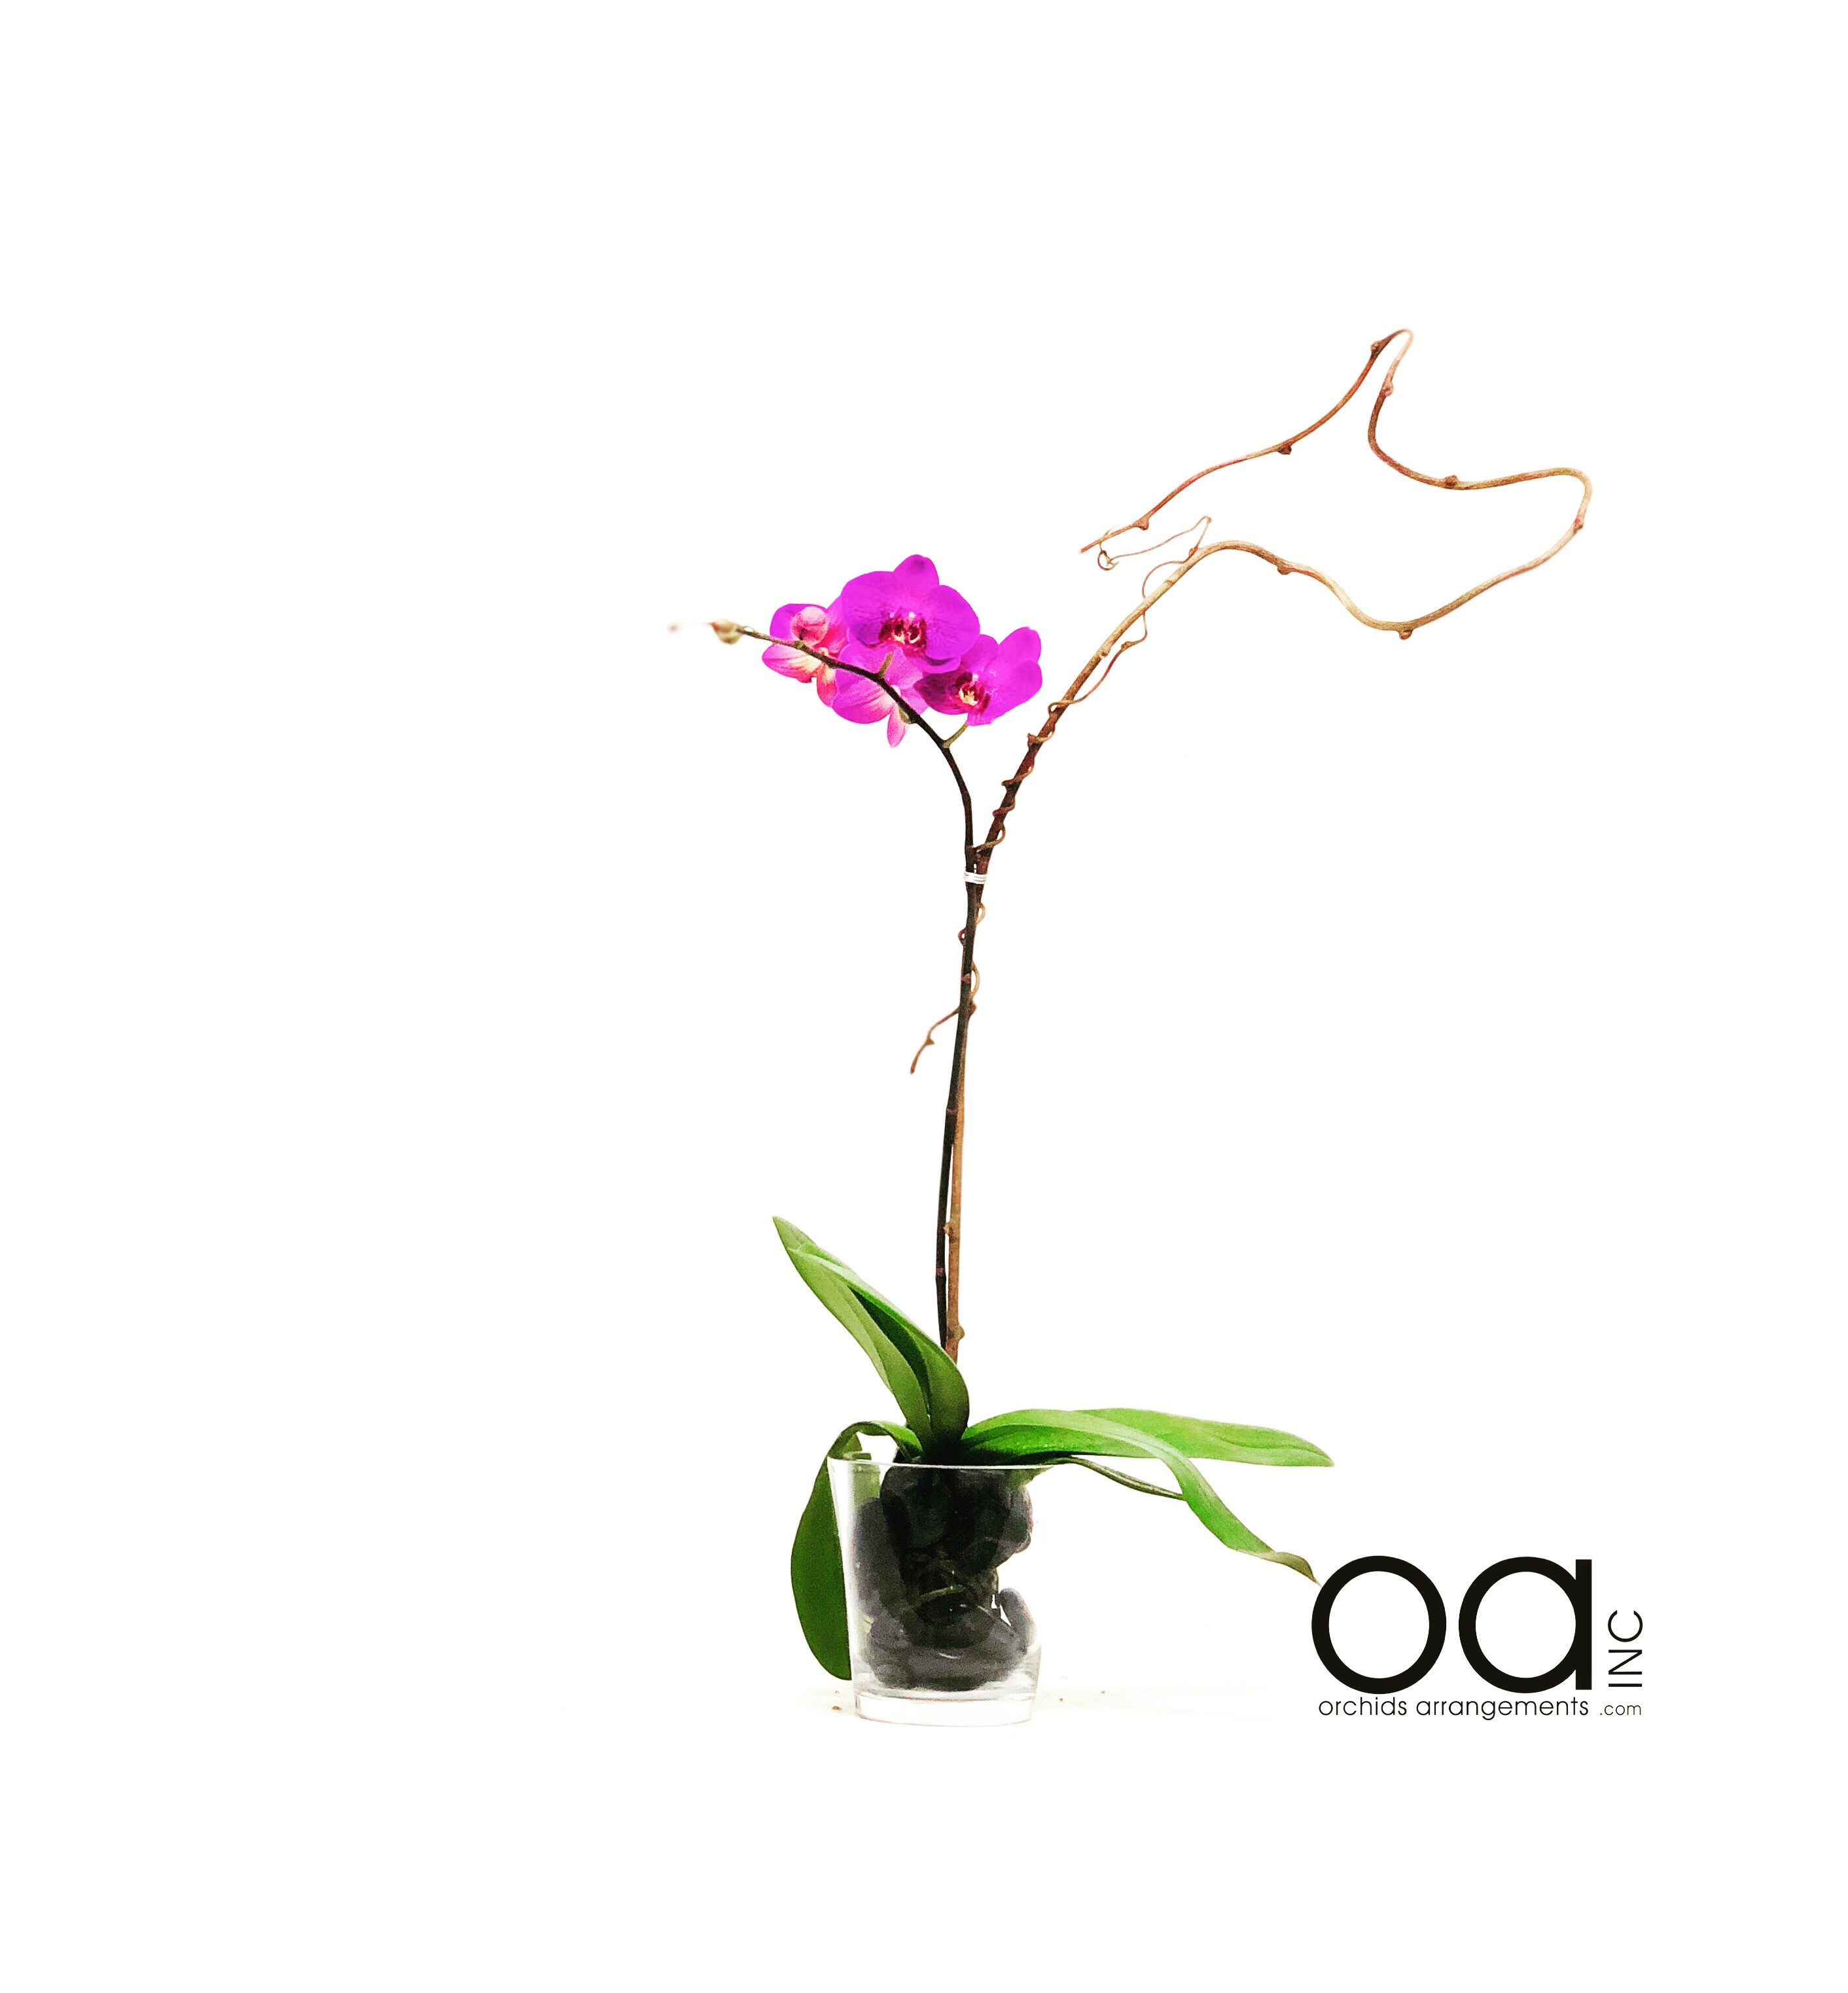 Send 1 Orchids Arrangements Fat Conical Vase